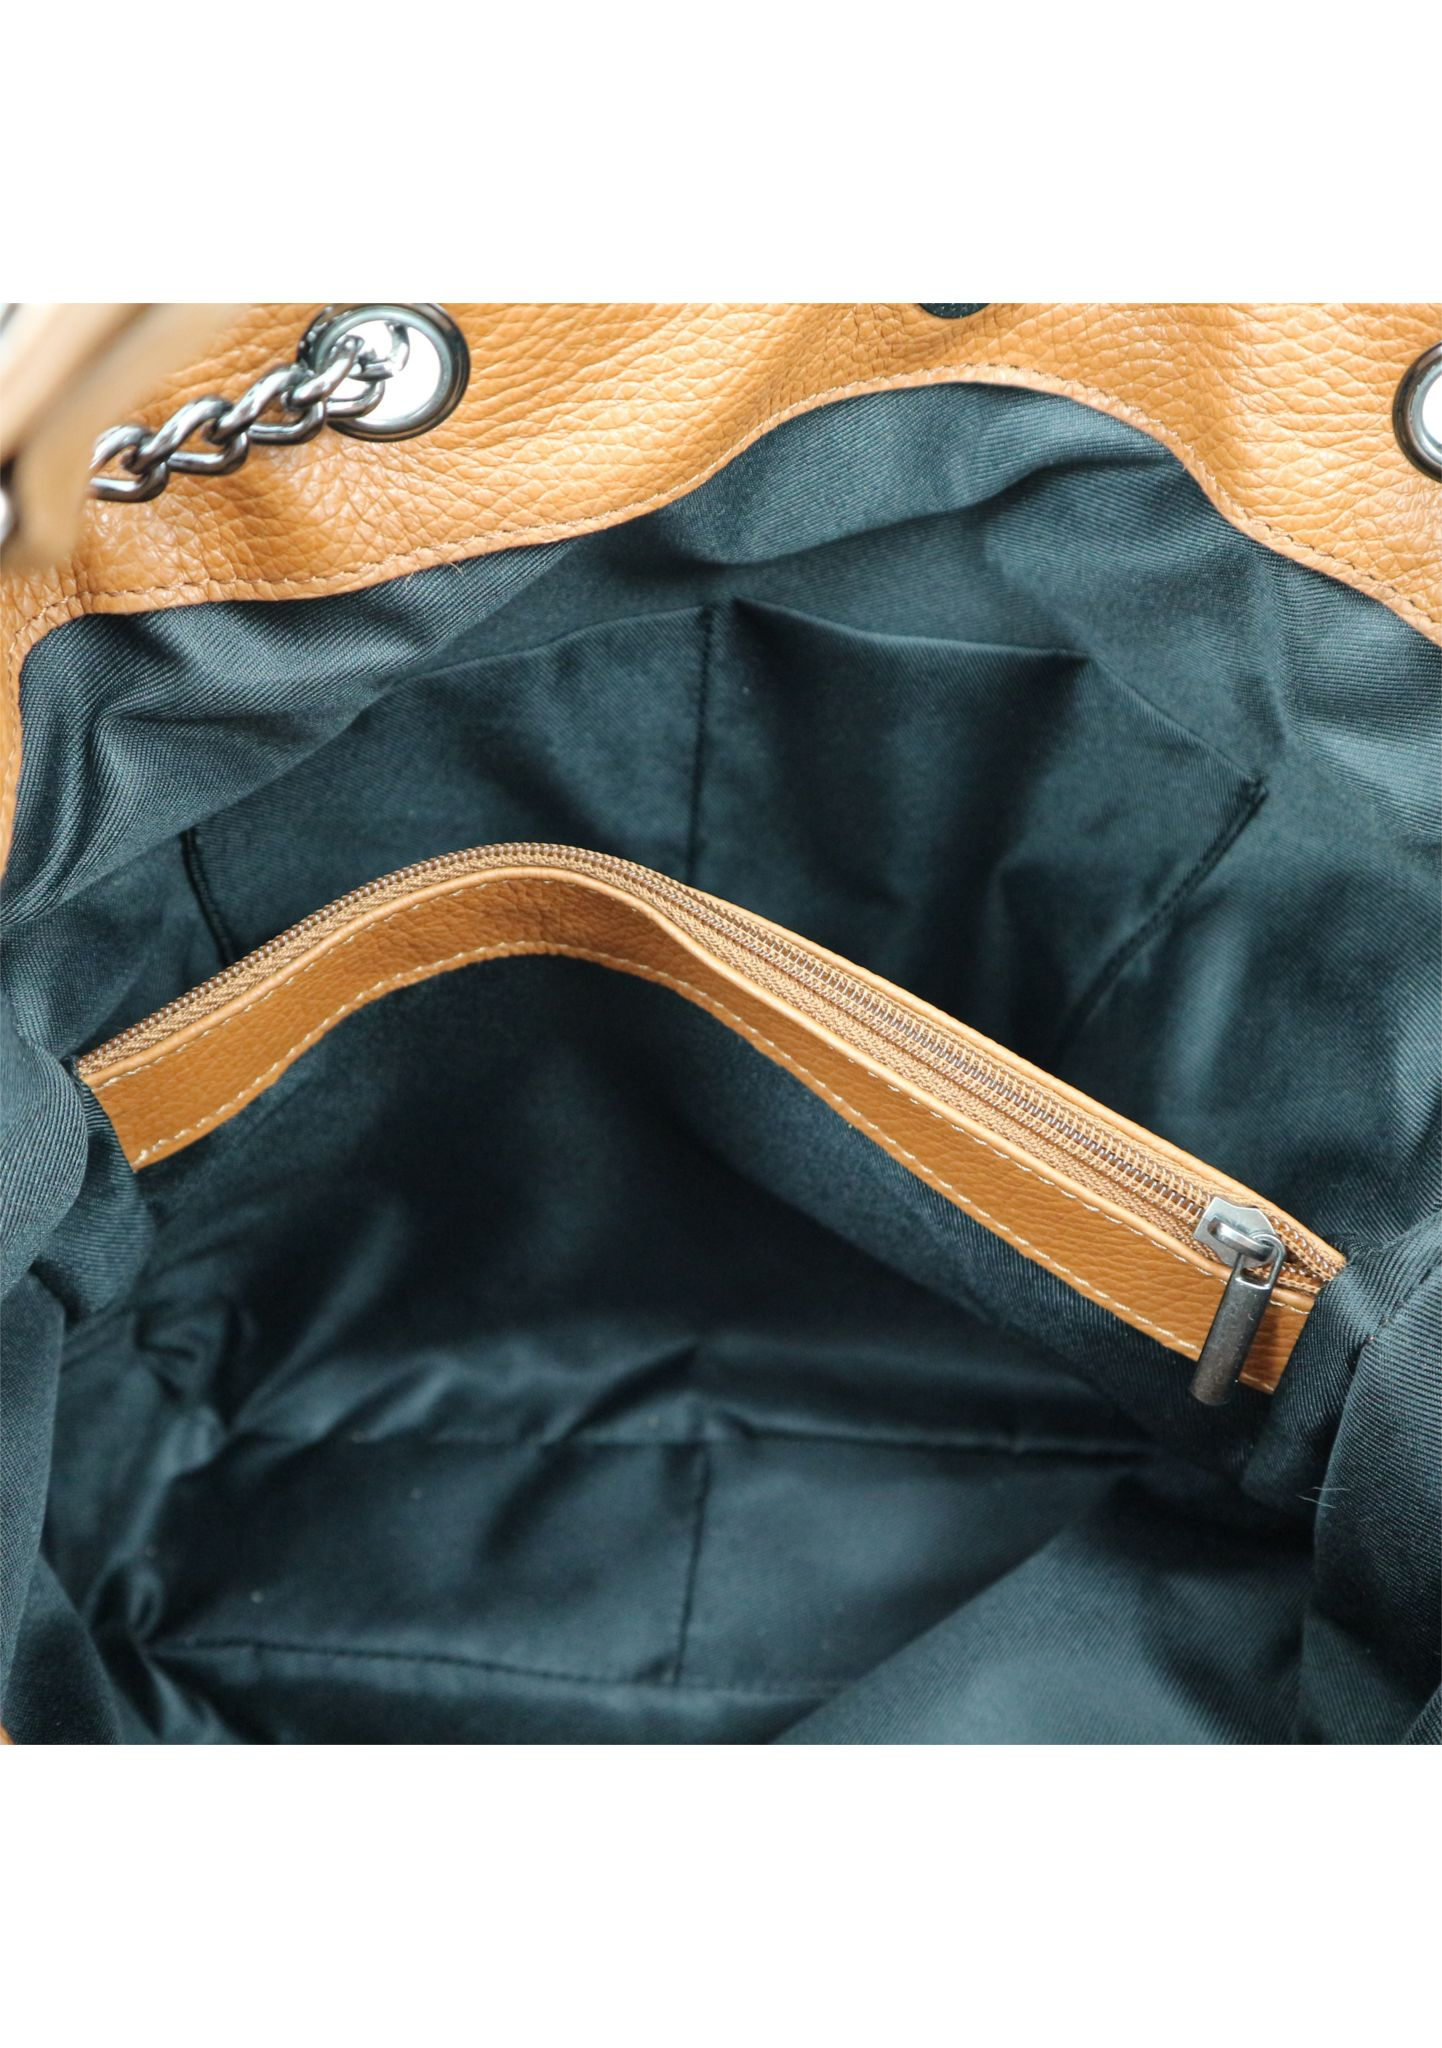 Cognac Shoulder Bag With Chain Strap 033 detail 7